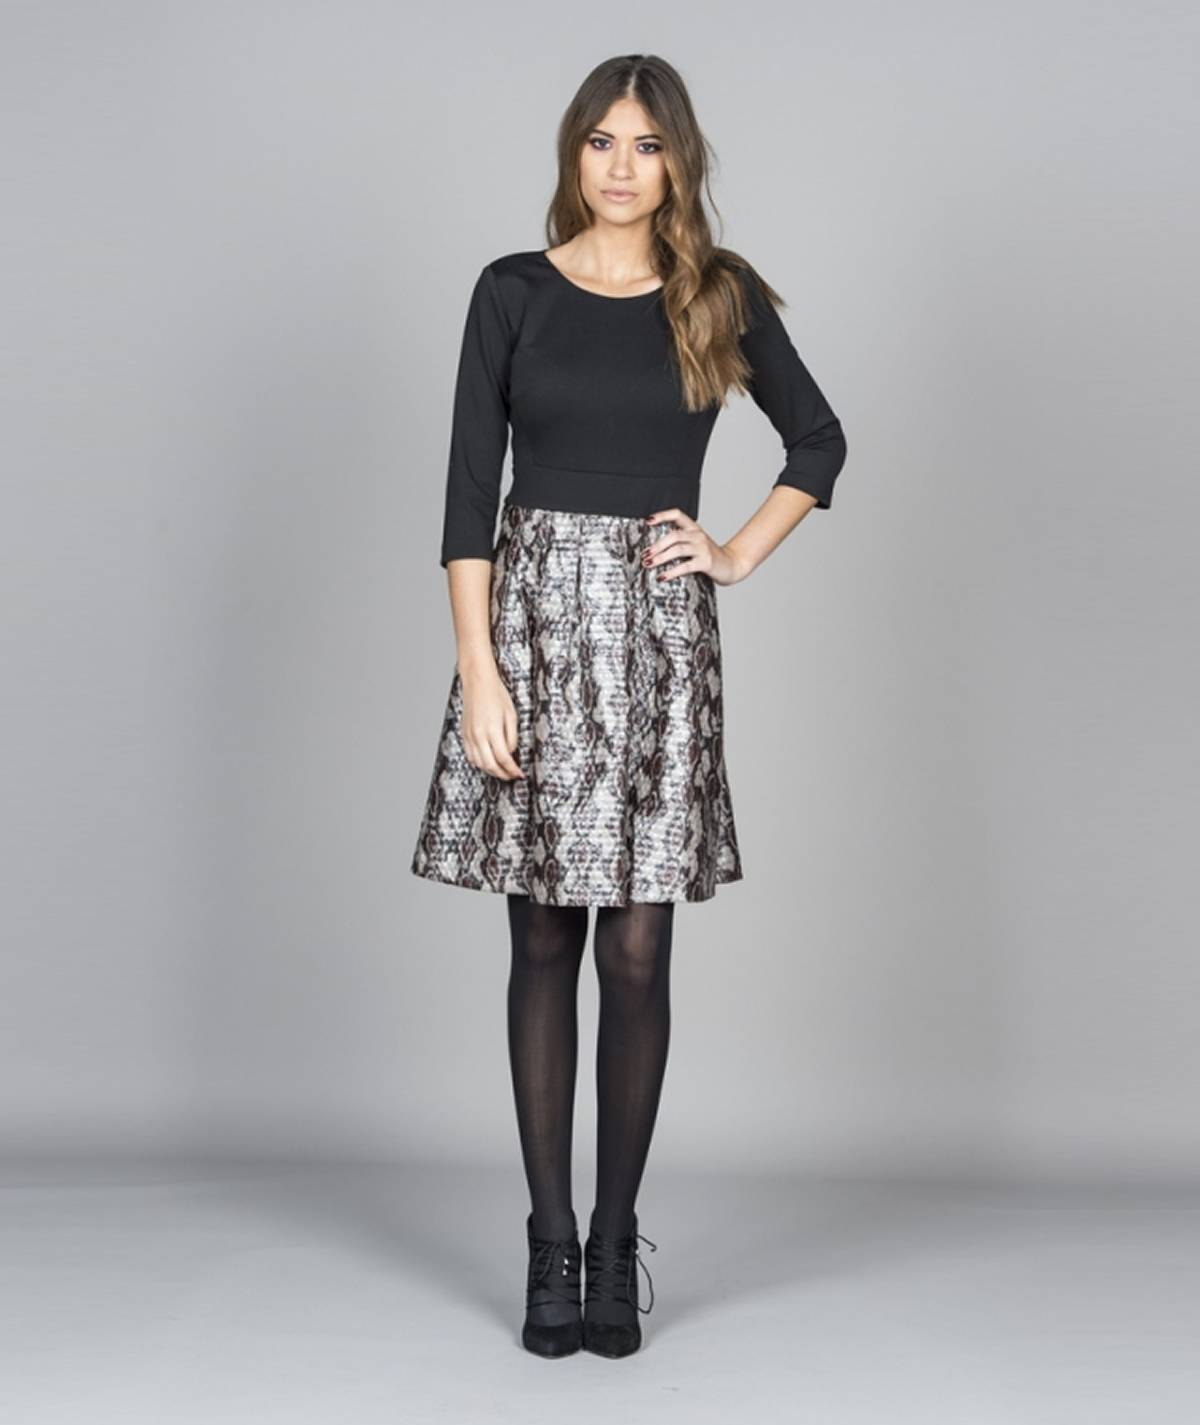 Dress with snake skin skirt